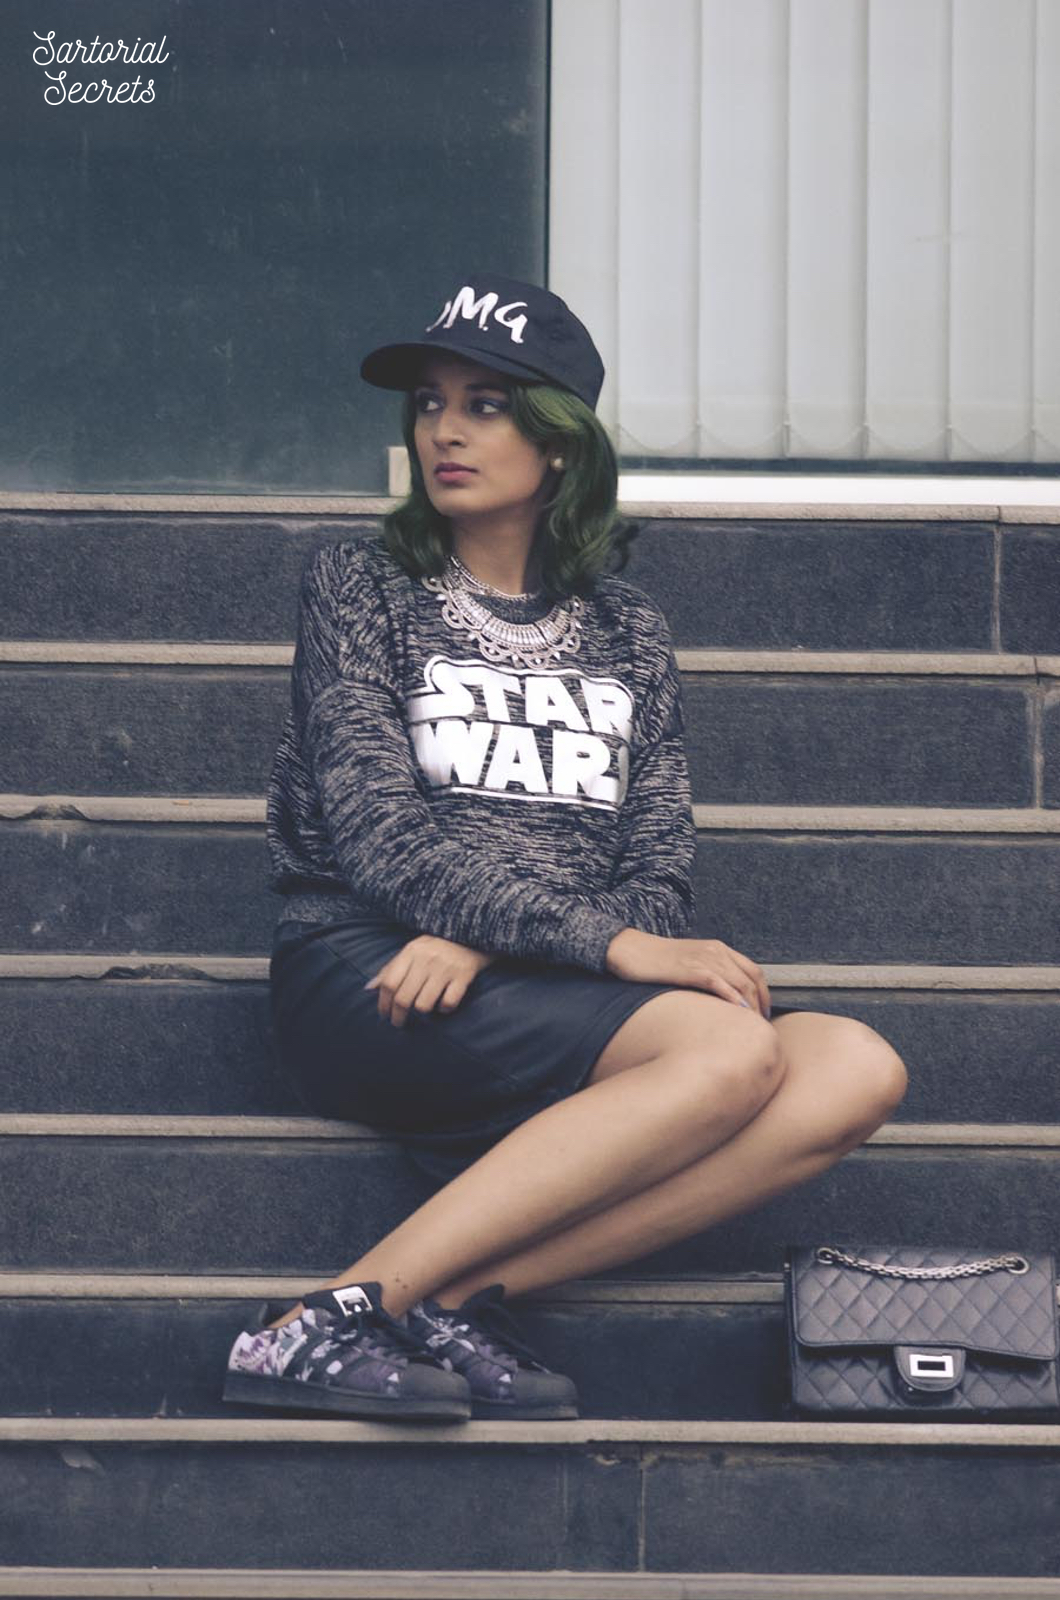 Star Wars-inspired outfit of the day